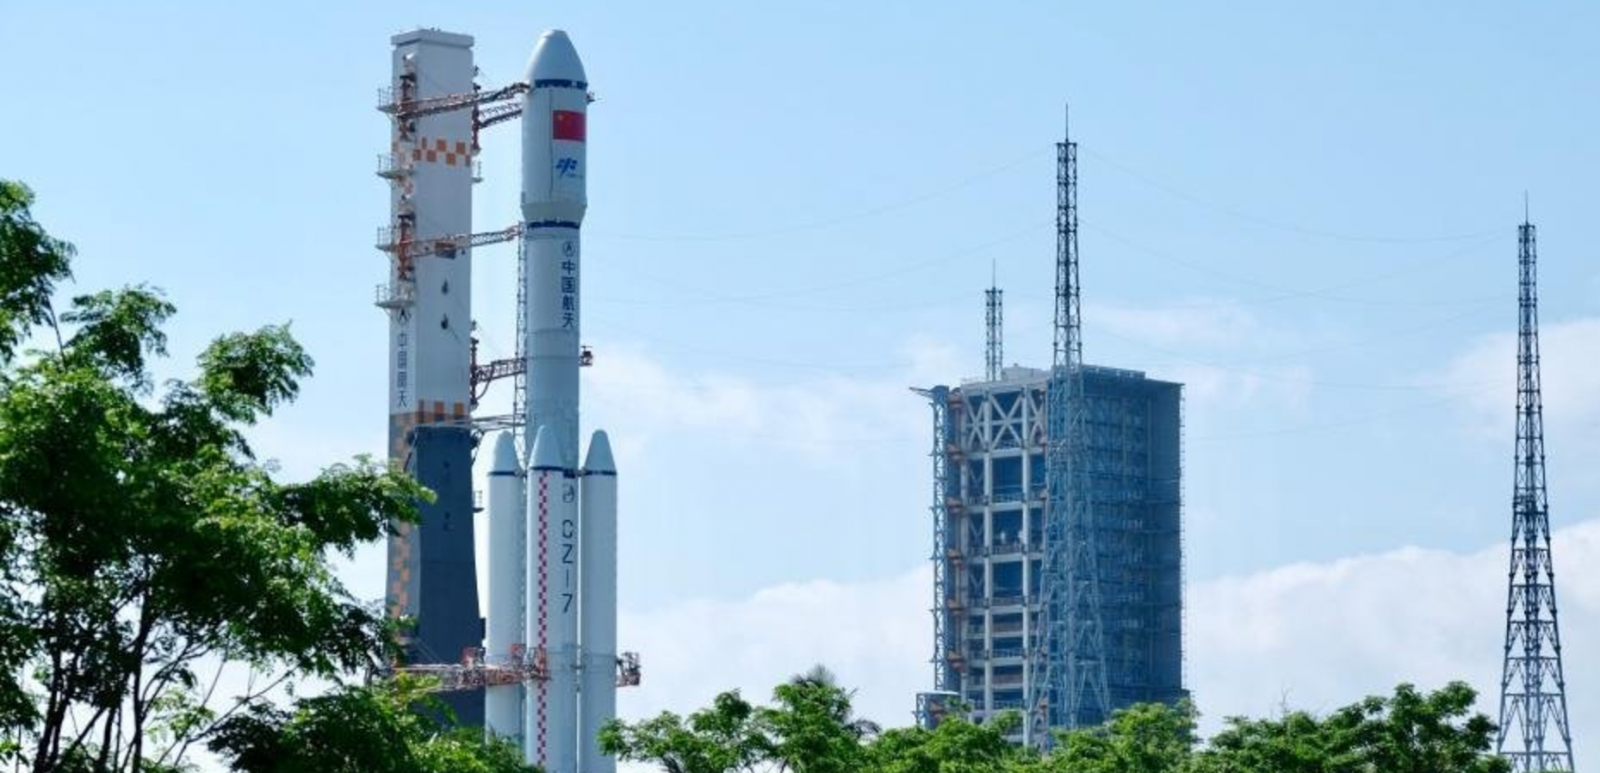 China's Long March 7 rocket, carrying the Tianzhou-1 resupply spacecraft, is rolled-out to the pad at the Wenchang Satellite Launch Center. Photo credit: Chinanews.com